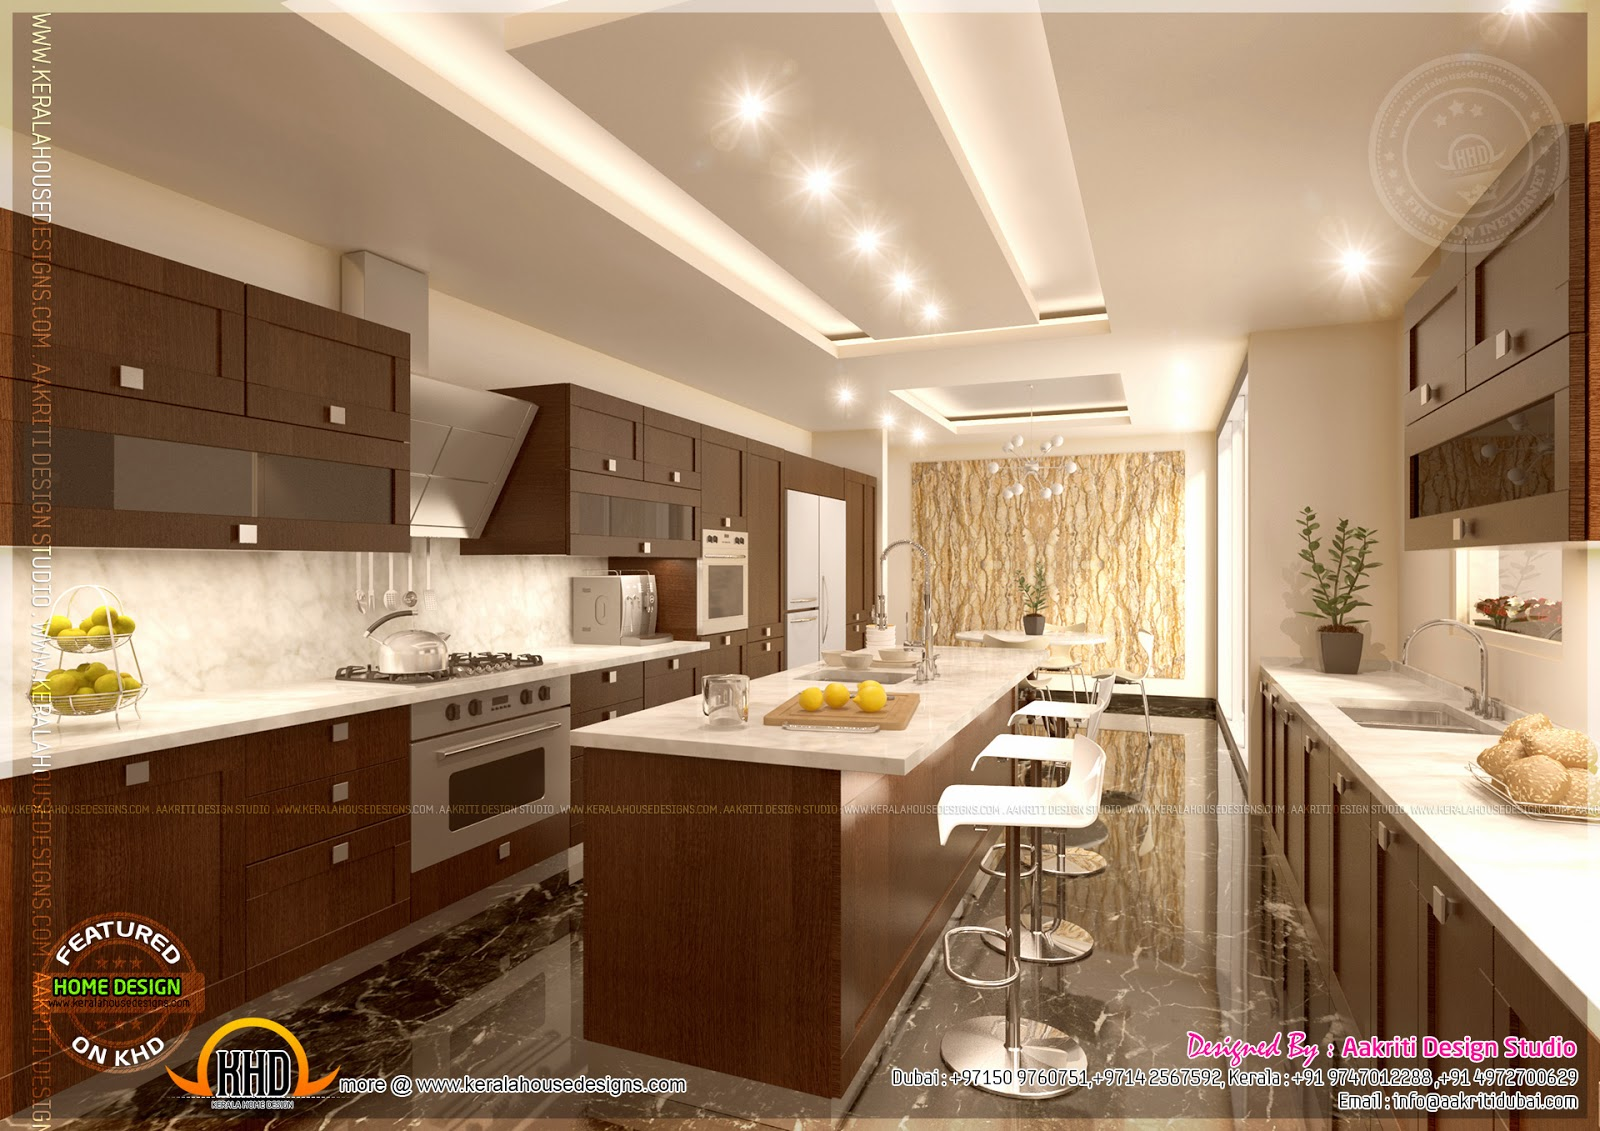 Kitchen designs by aakriti design studio kerala home for Pictures of kitchen plans